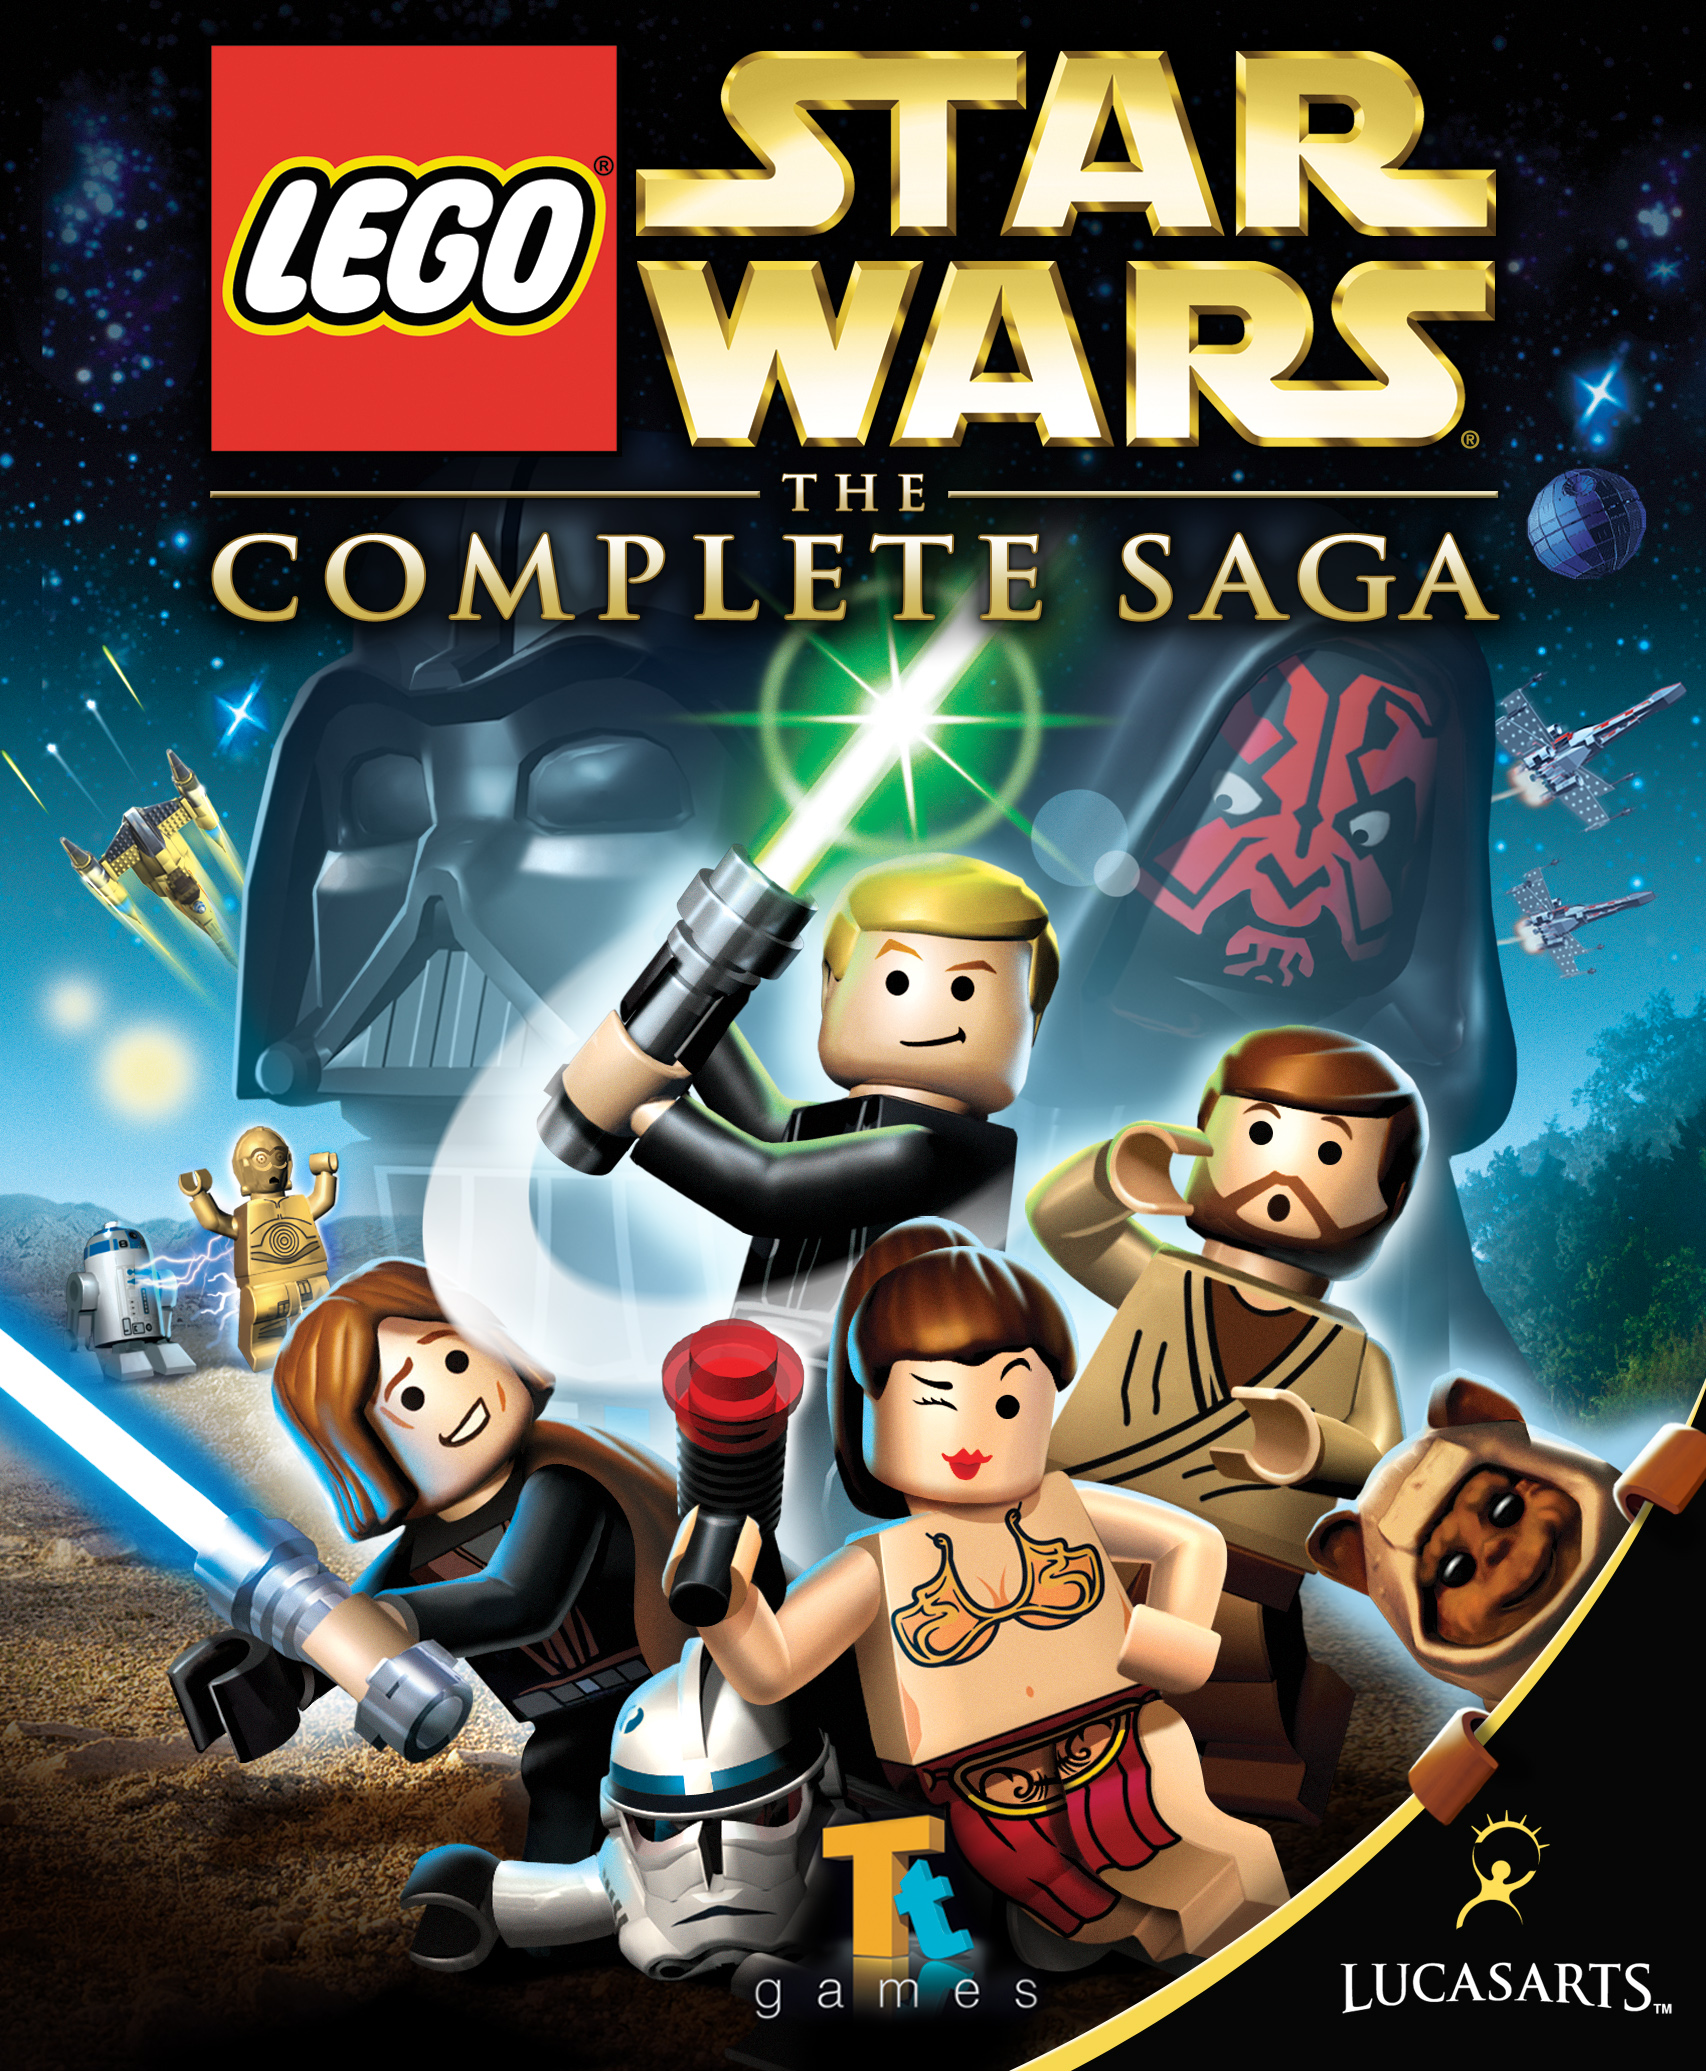 Lego star wars the complete saga wookieepedia the star wars wiki